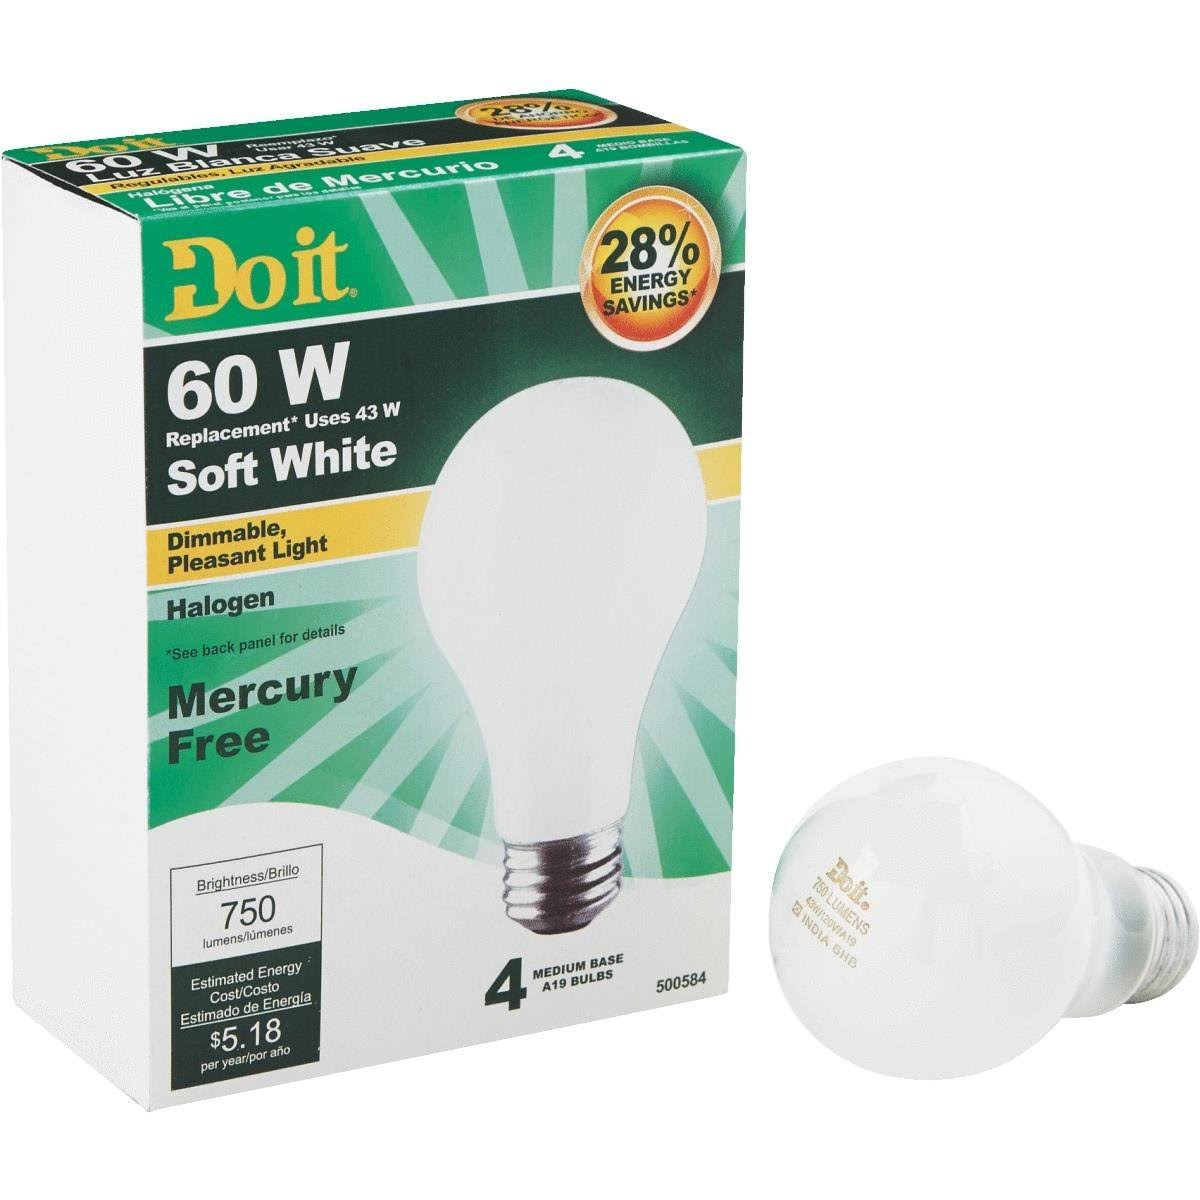 Do it Halogen Bulb - 43W, Soft White